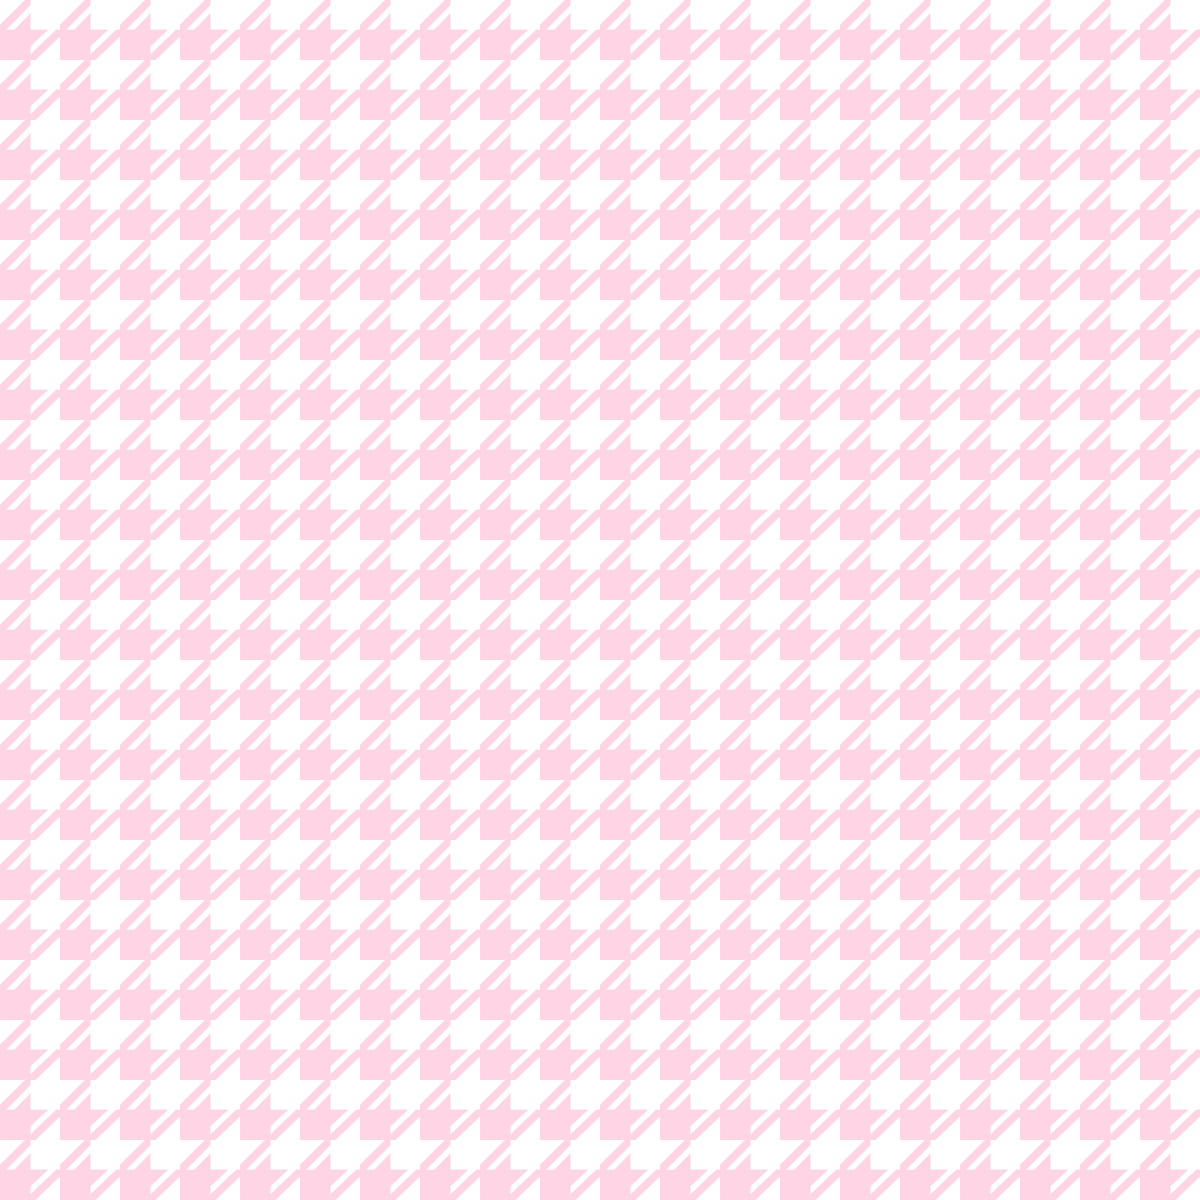 Checkered Scrapbook Paper Scrapbooking Paper